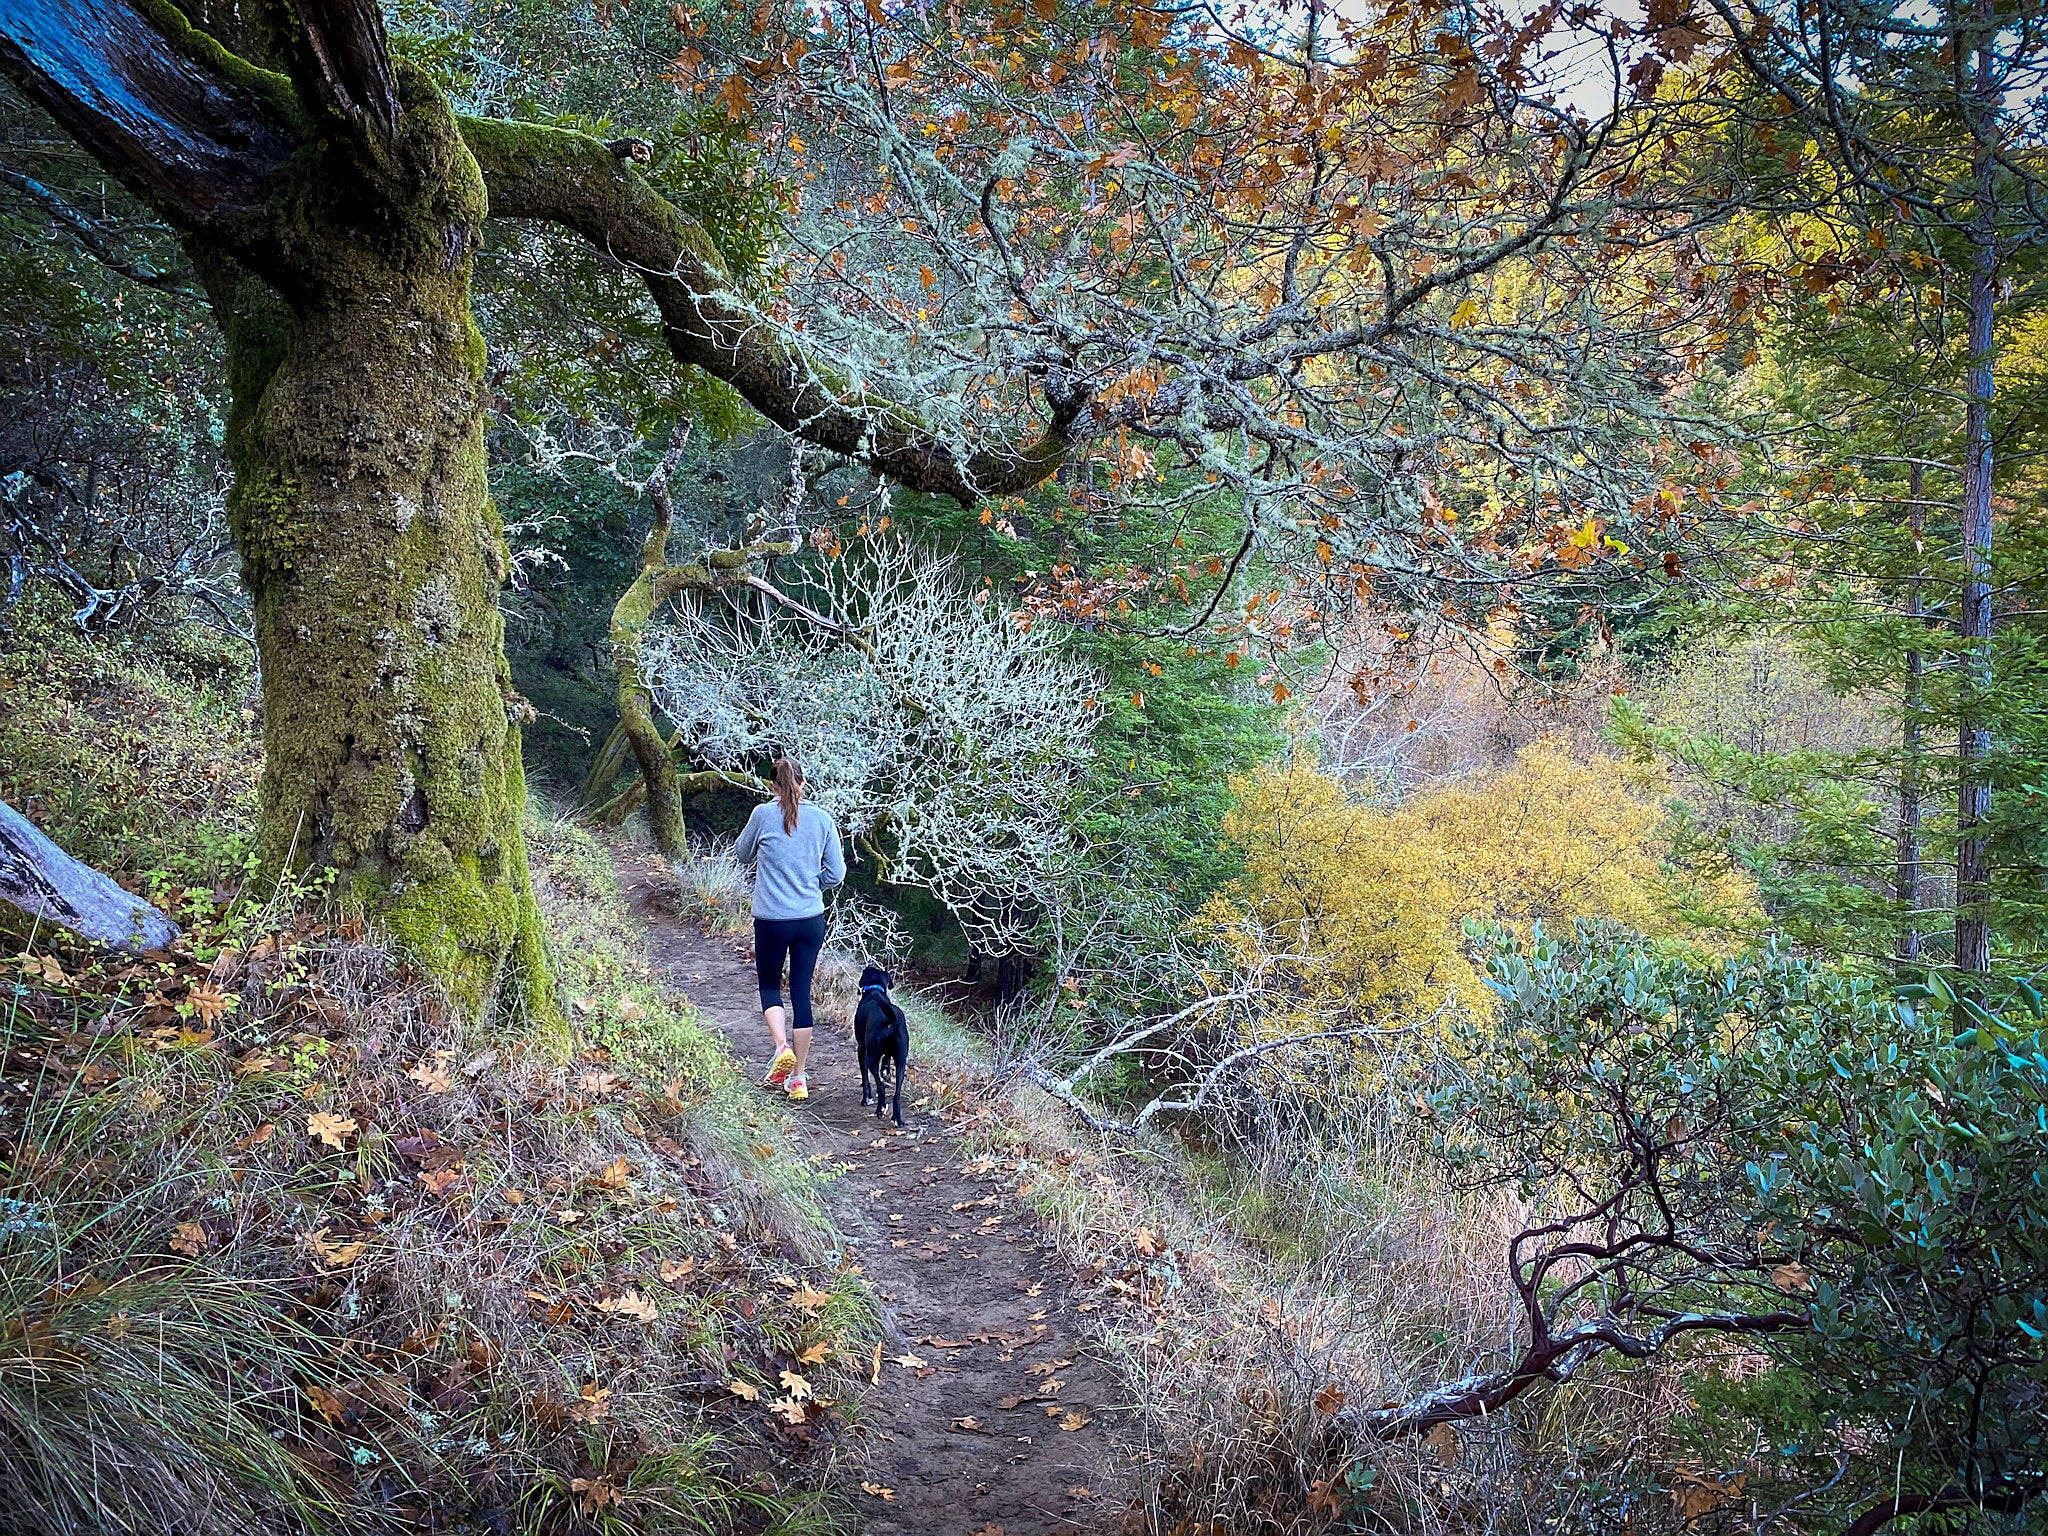 Woman and dog hiking through a forest in Mount Tam